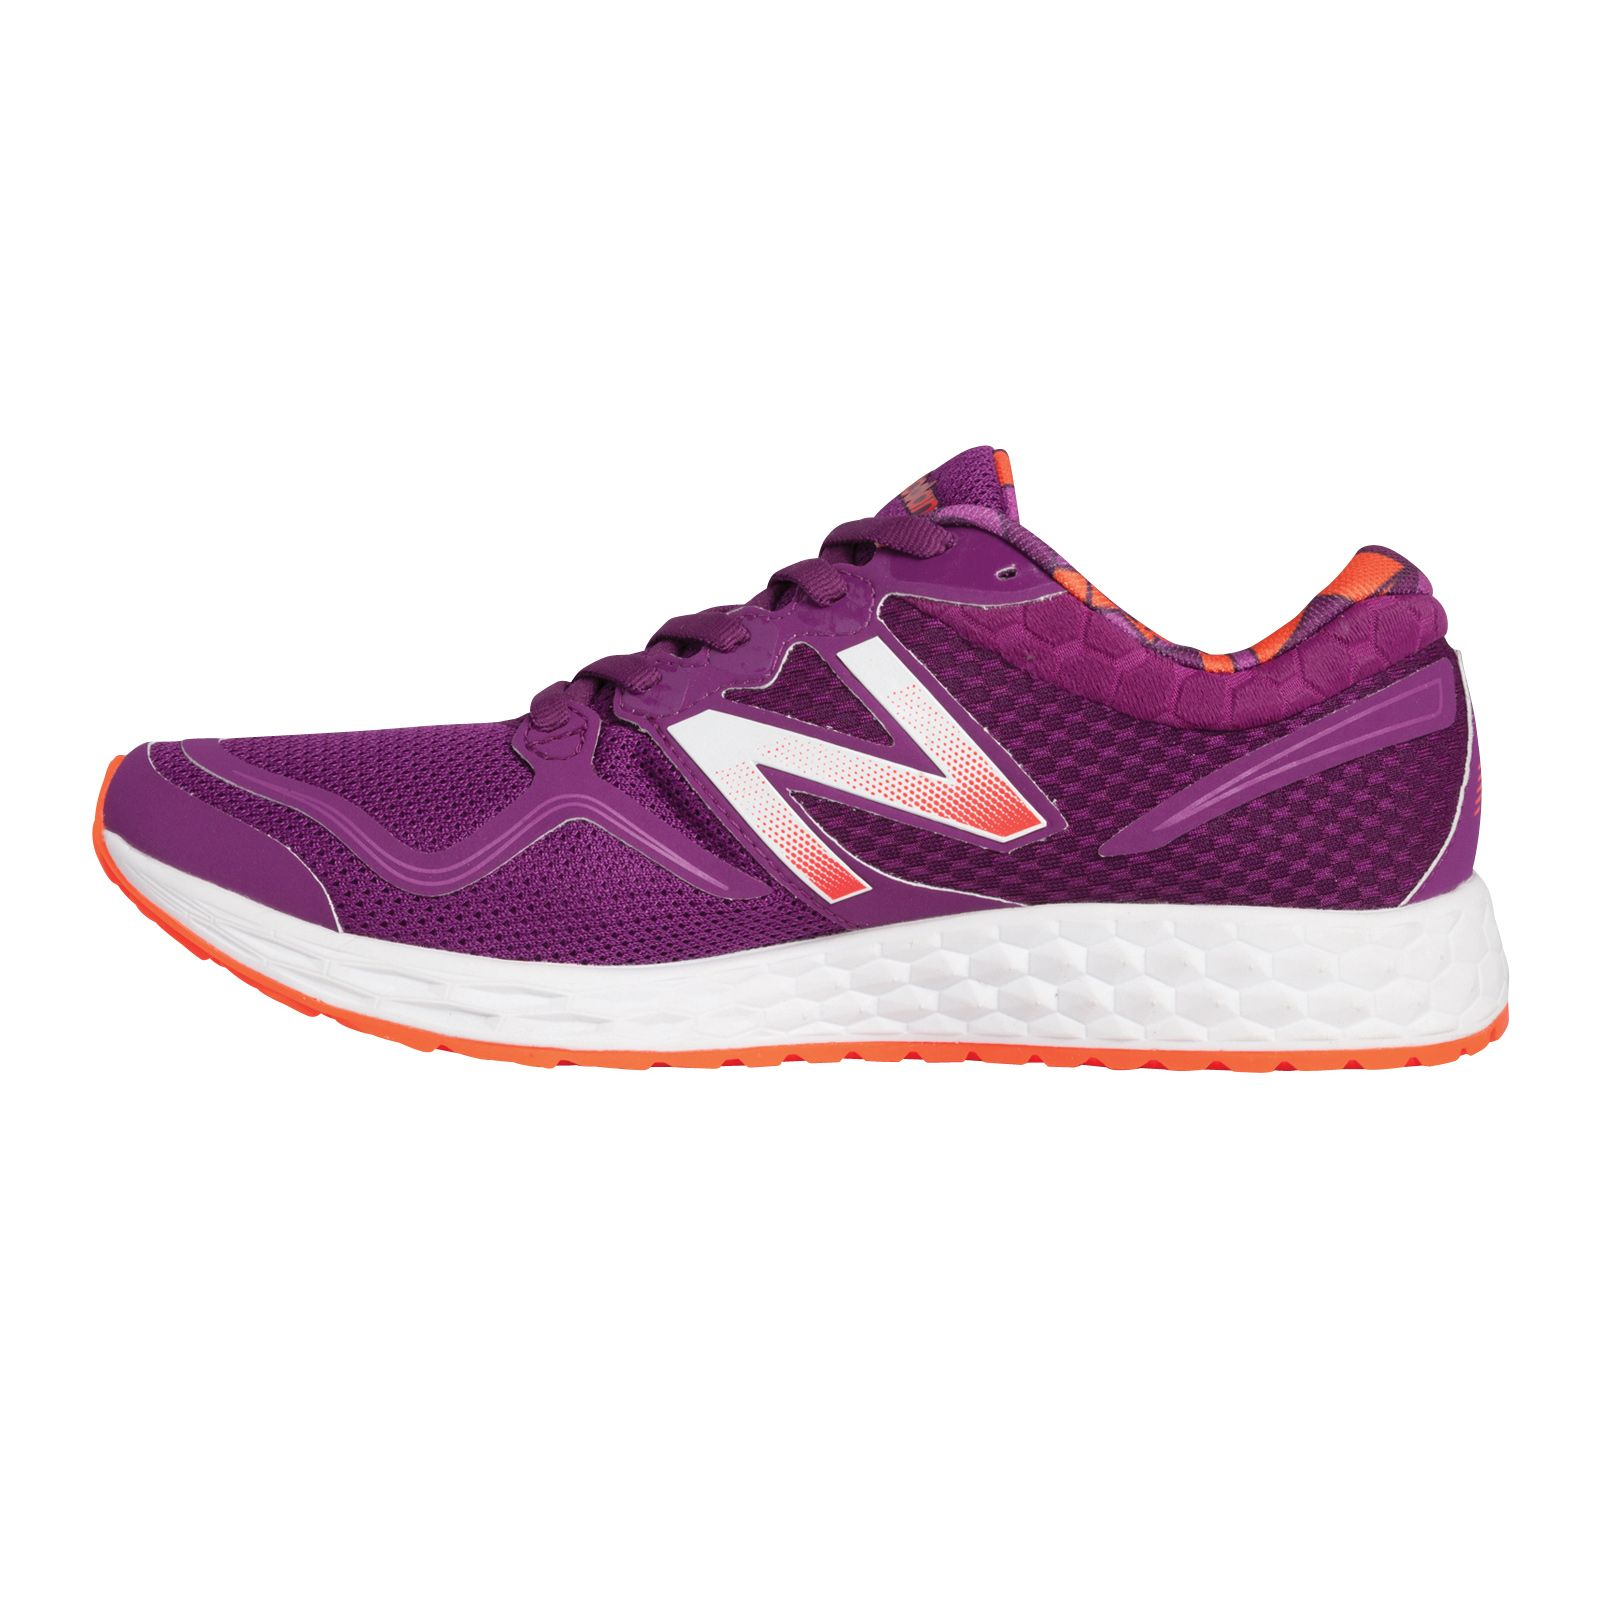 New Balance Road Shoe Of The Year